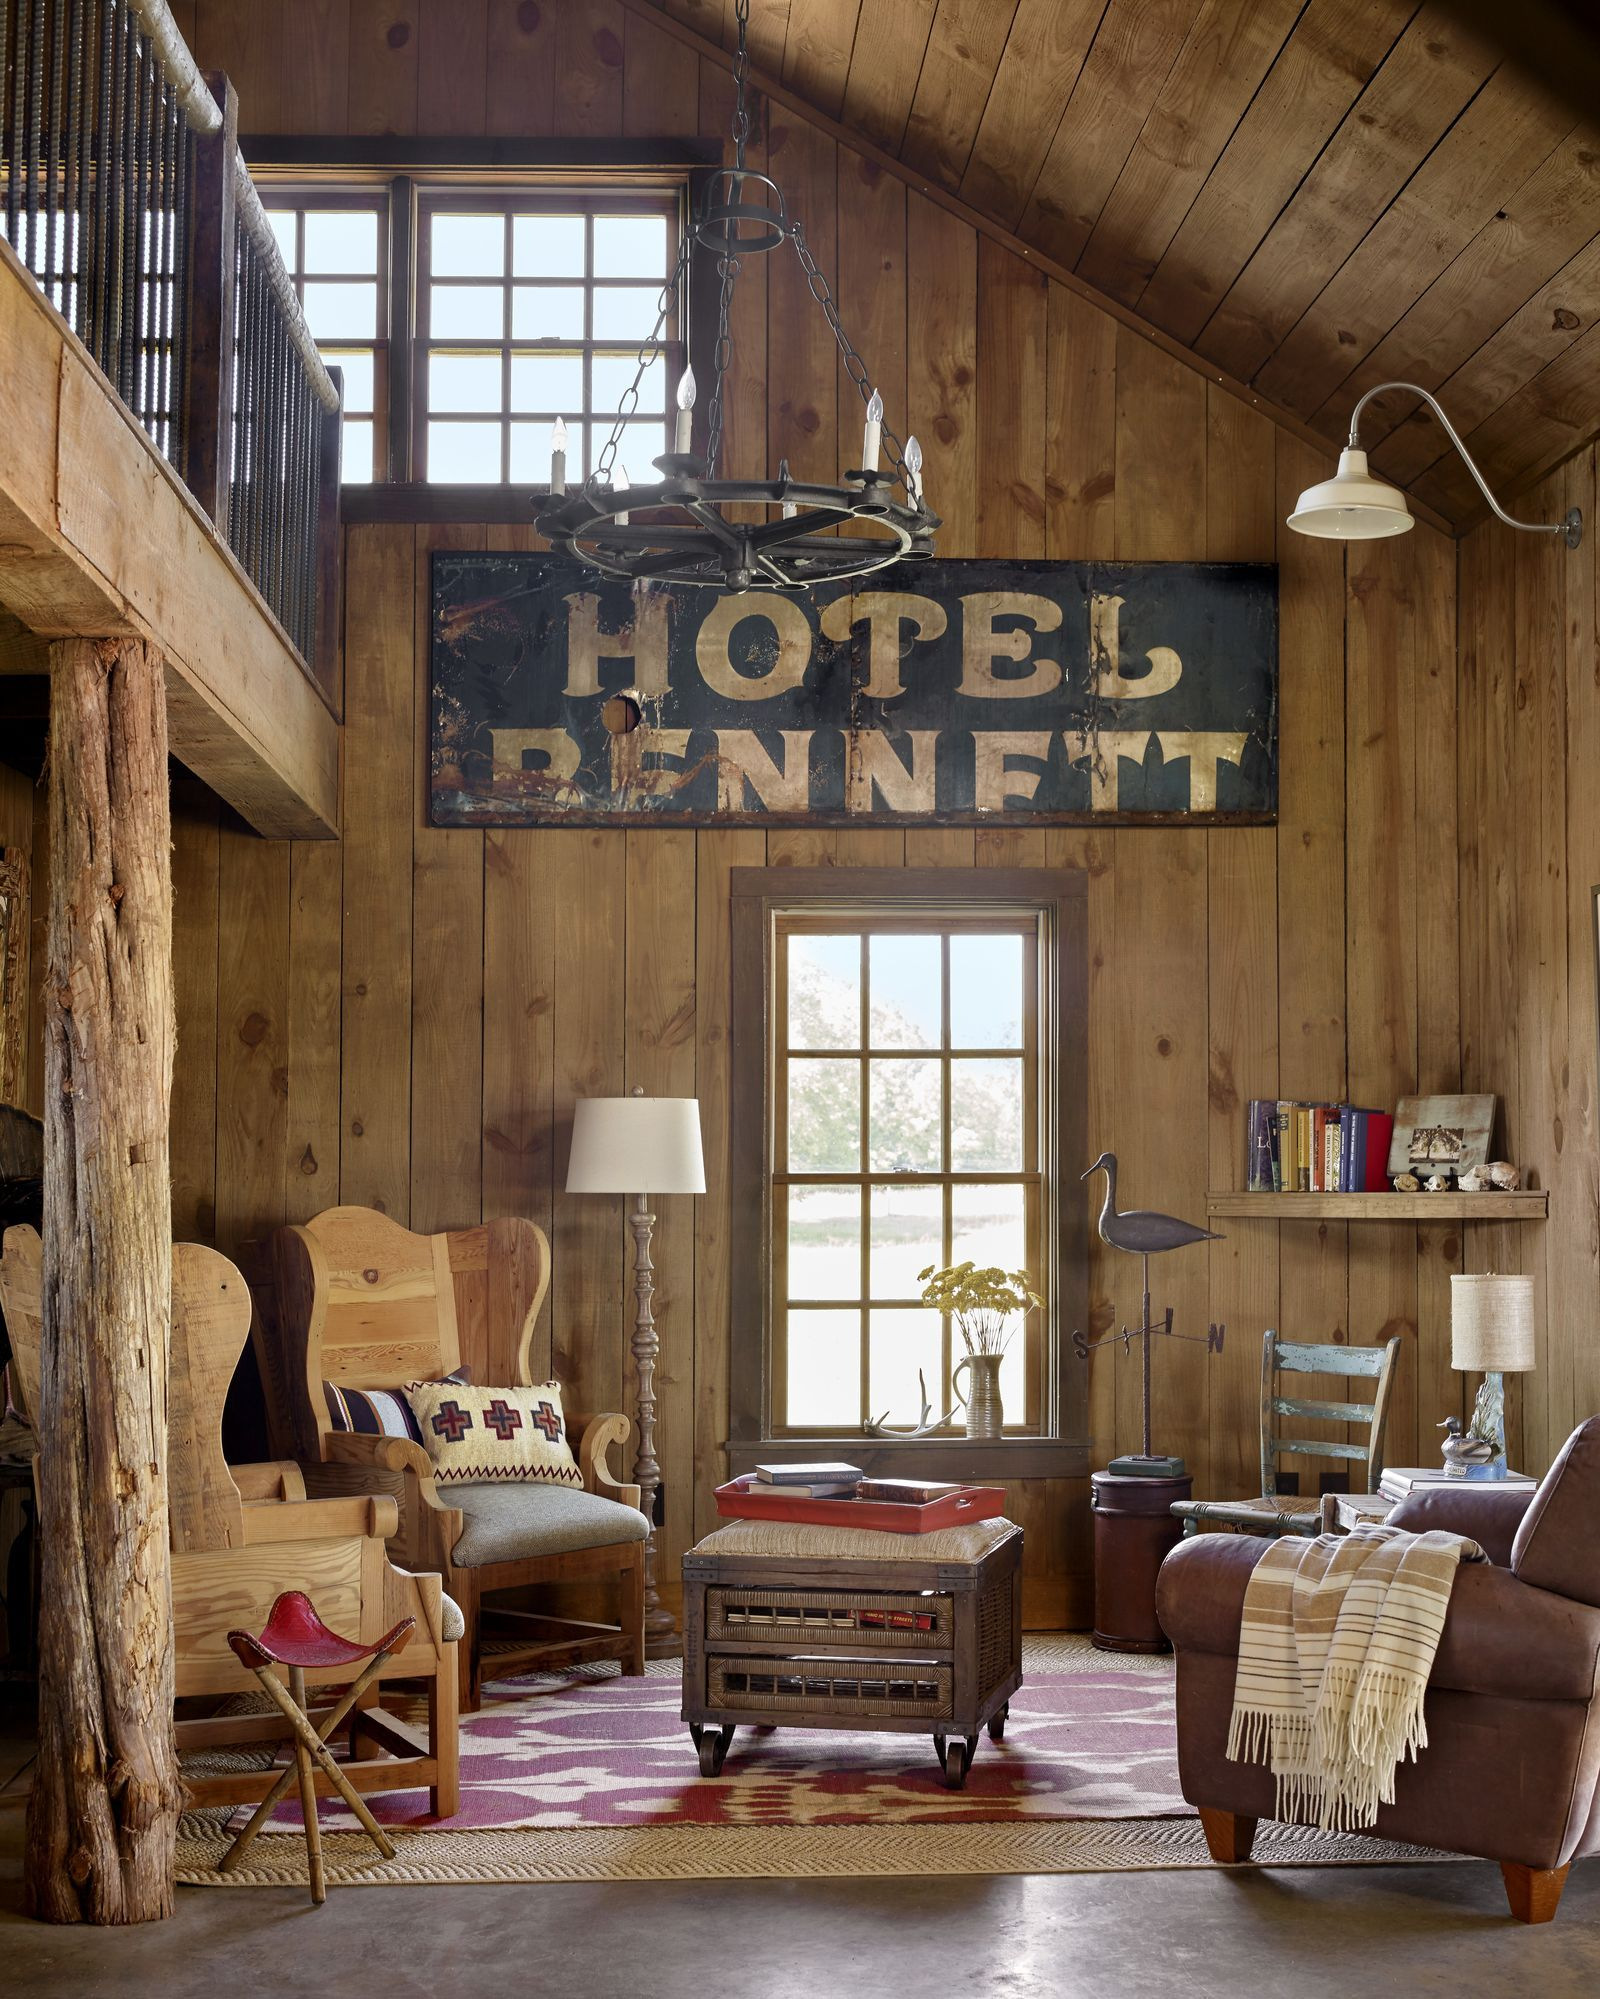 Create A Cozy Cabin Like Space With These Rustic Decor Ideas Living Room Decor Rustic Rustic Living Room Rustic Living Room Furniture